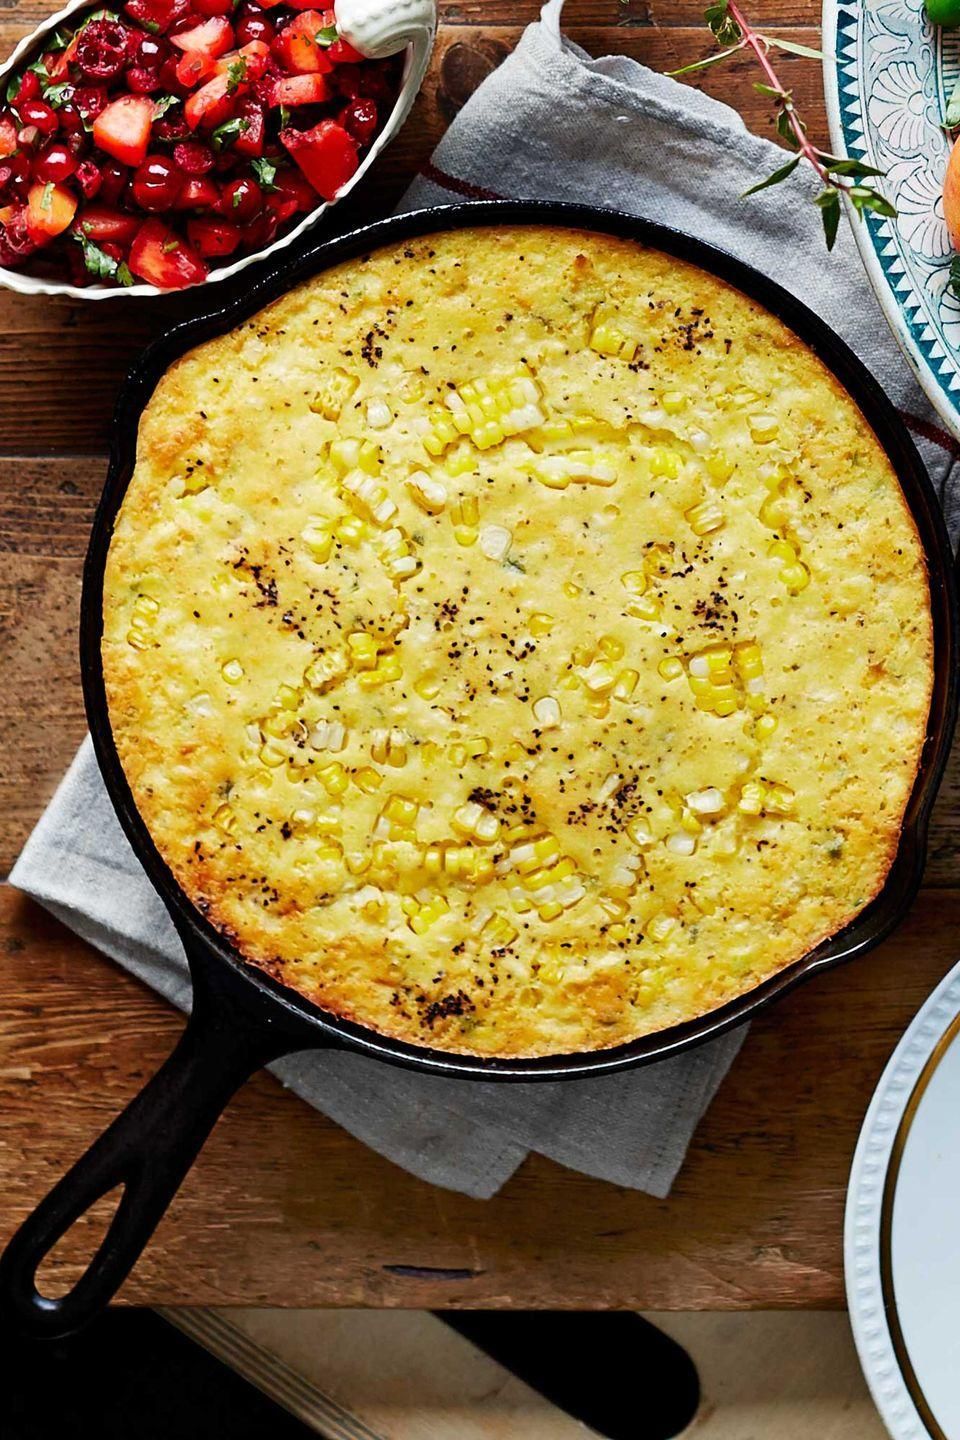 "<p>Spoonbread is a super-quick alternative to cornbread dressing—and it's easy enough for weeknights. Look for hatch chiles, prevalent in the Southwest, for a robust pepper flavor. Stir in 1 cup grated Cheddar for a richer cheesy dish.</p><p><strong><a href=""https://www.countryliving.com/recipefinder/jalapeno-green-chile-spoonbread-recipe-clx1114?click=recipe_sr"" rel=""nofollow noopener"" target=""_blank"" data-ylk=""slk:Get the recipe"" class=""link rapid-noclick-resp"">Get the recipe</a>.</strong></p>"